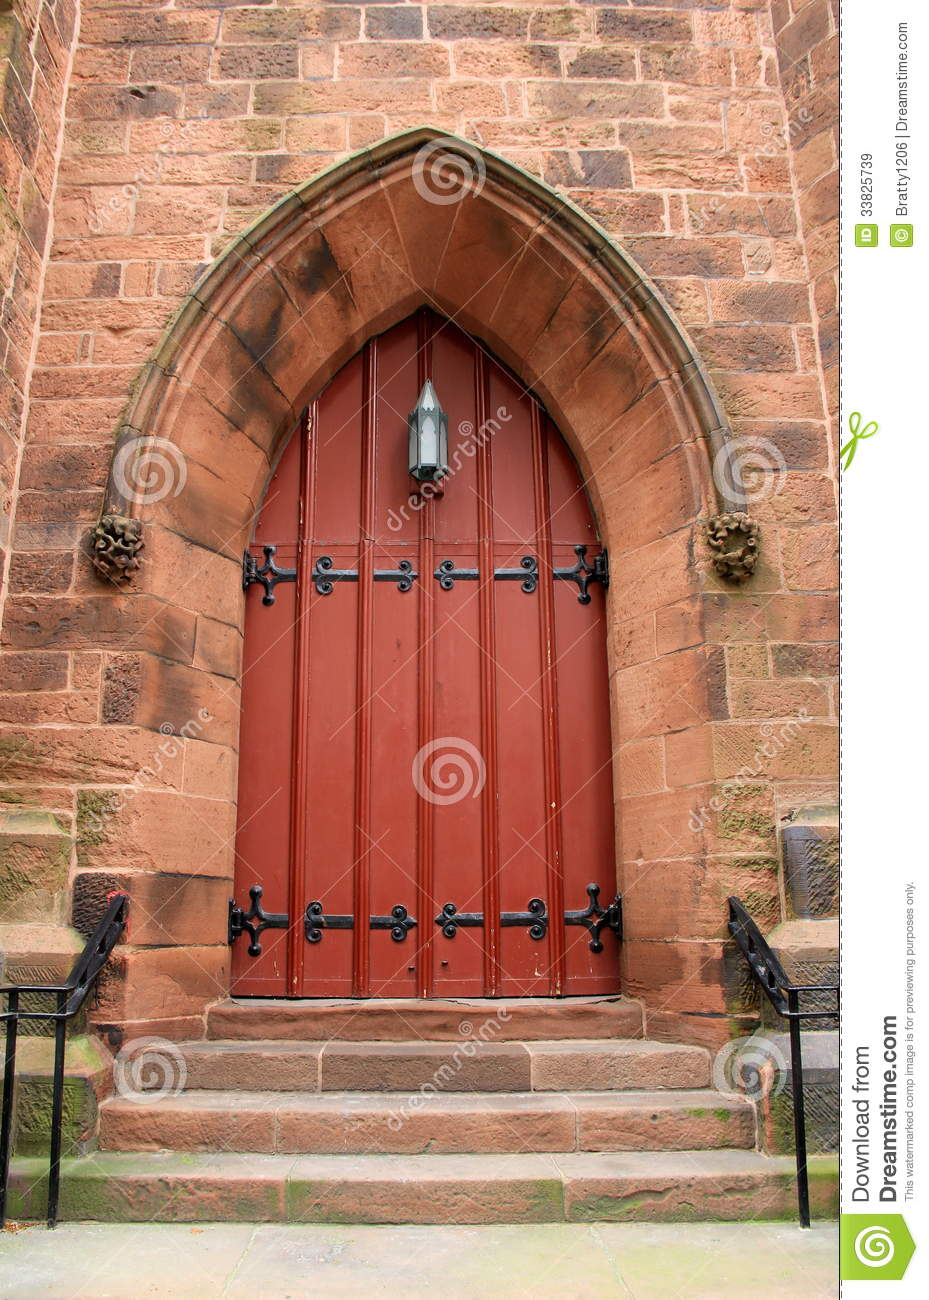 Imposing Detail Of Old Church Doors Stock Image  Image of